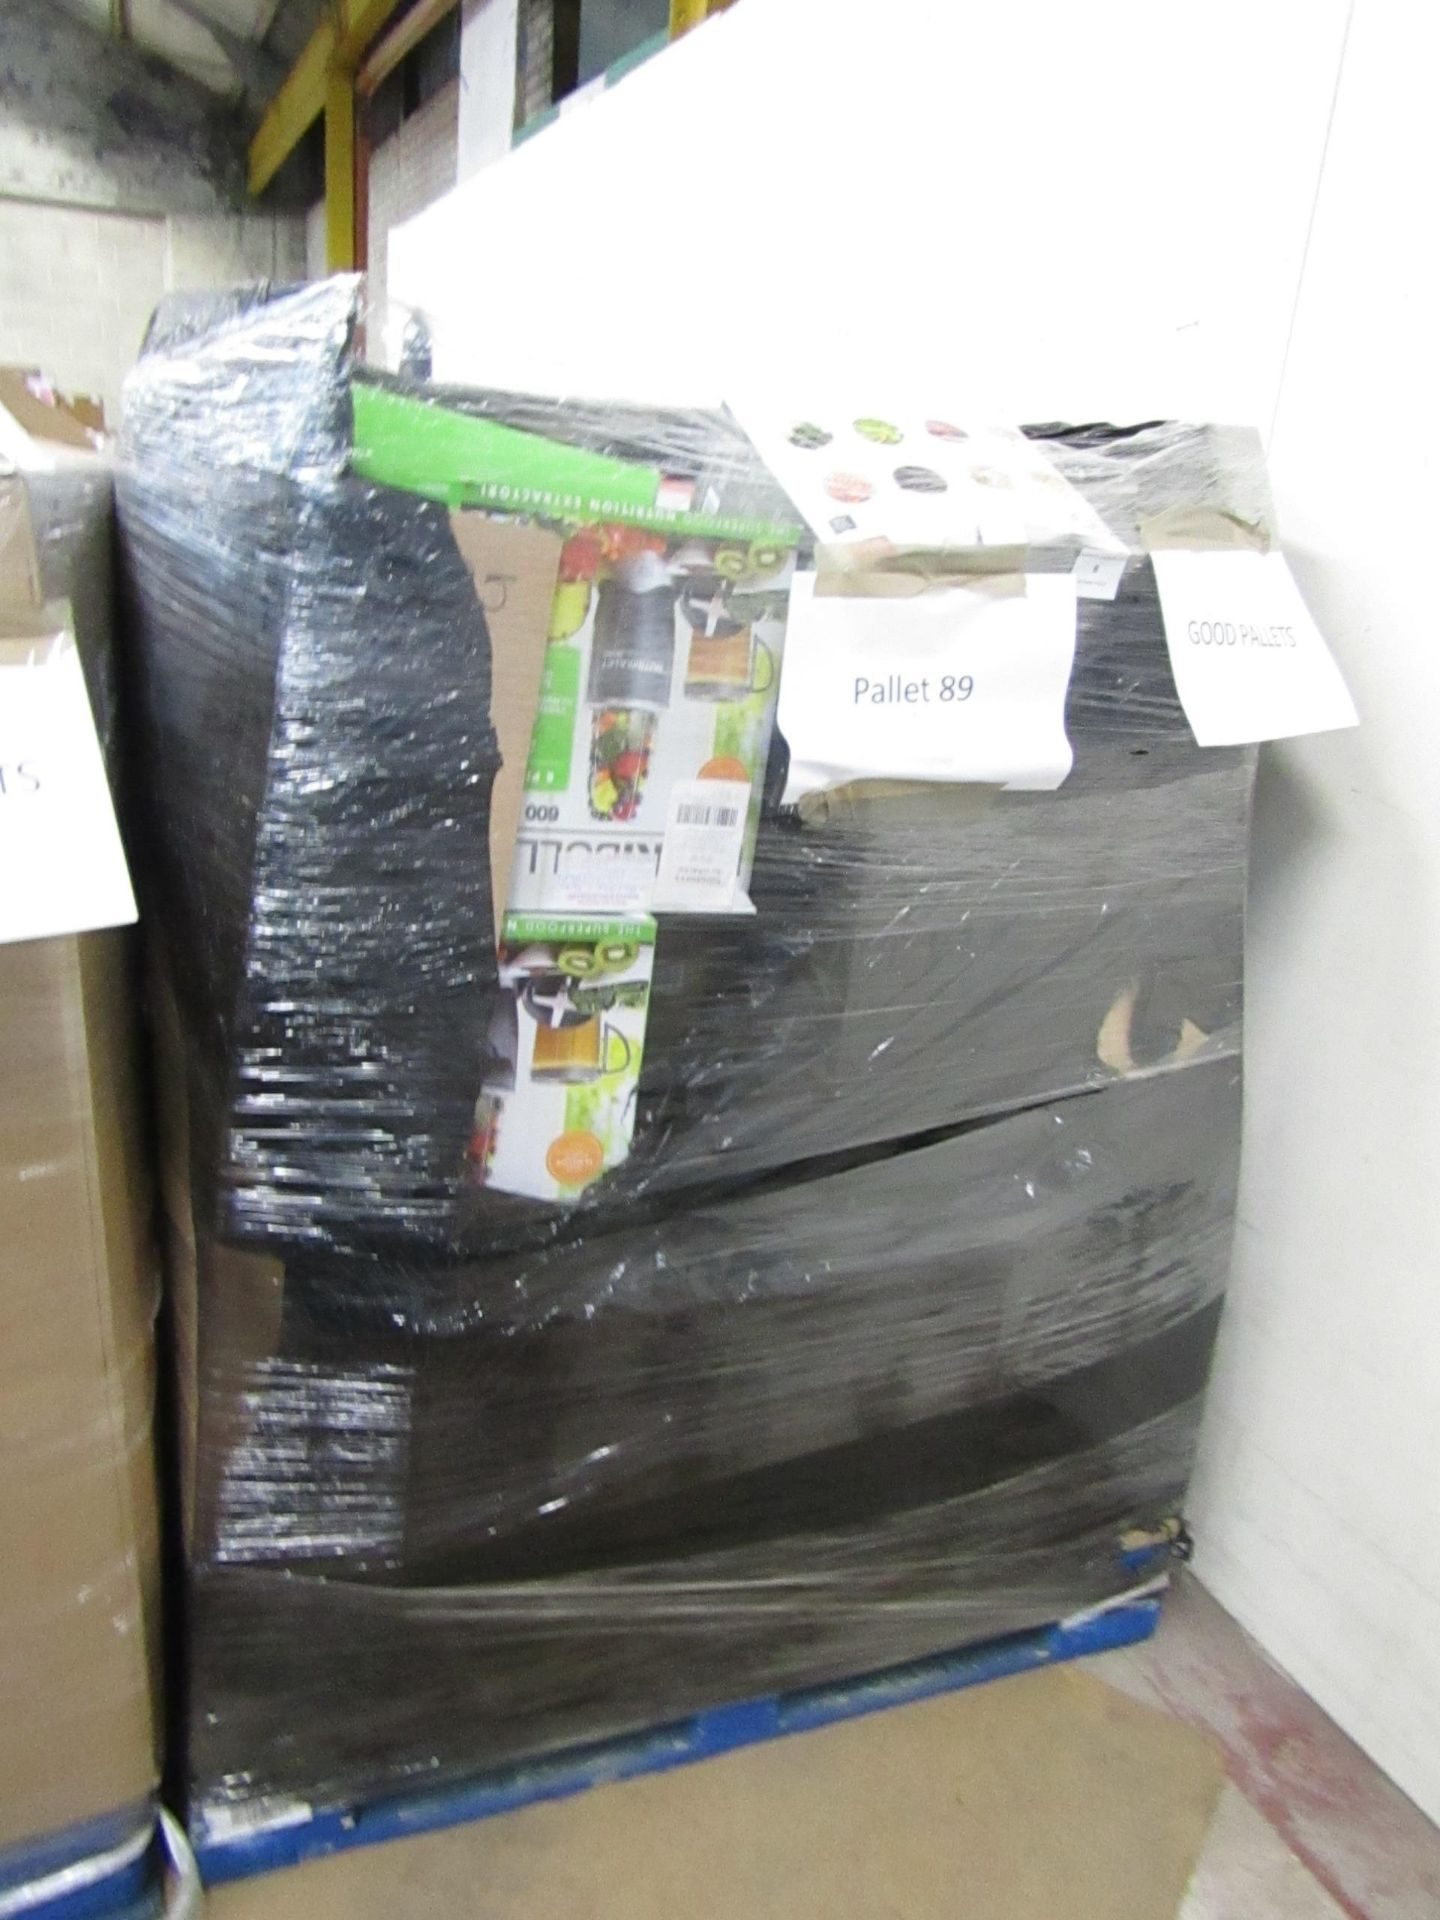 Lot 8 - |APPROX 52X | THE PALLET CONTAINS NUTRI BULLETS, AIR HAWKS, AIR FRYER XL'S, RED COPPER CHEFS, X